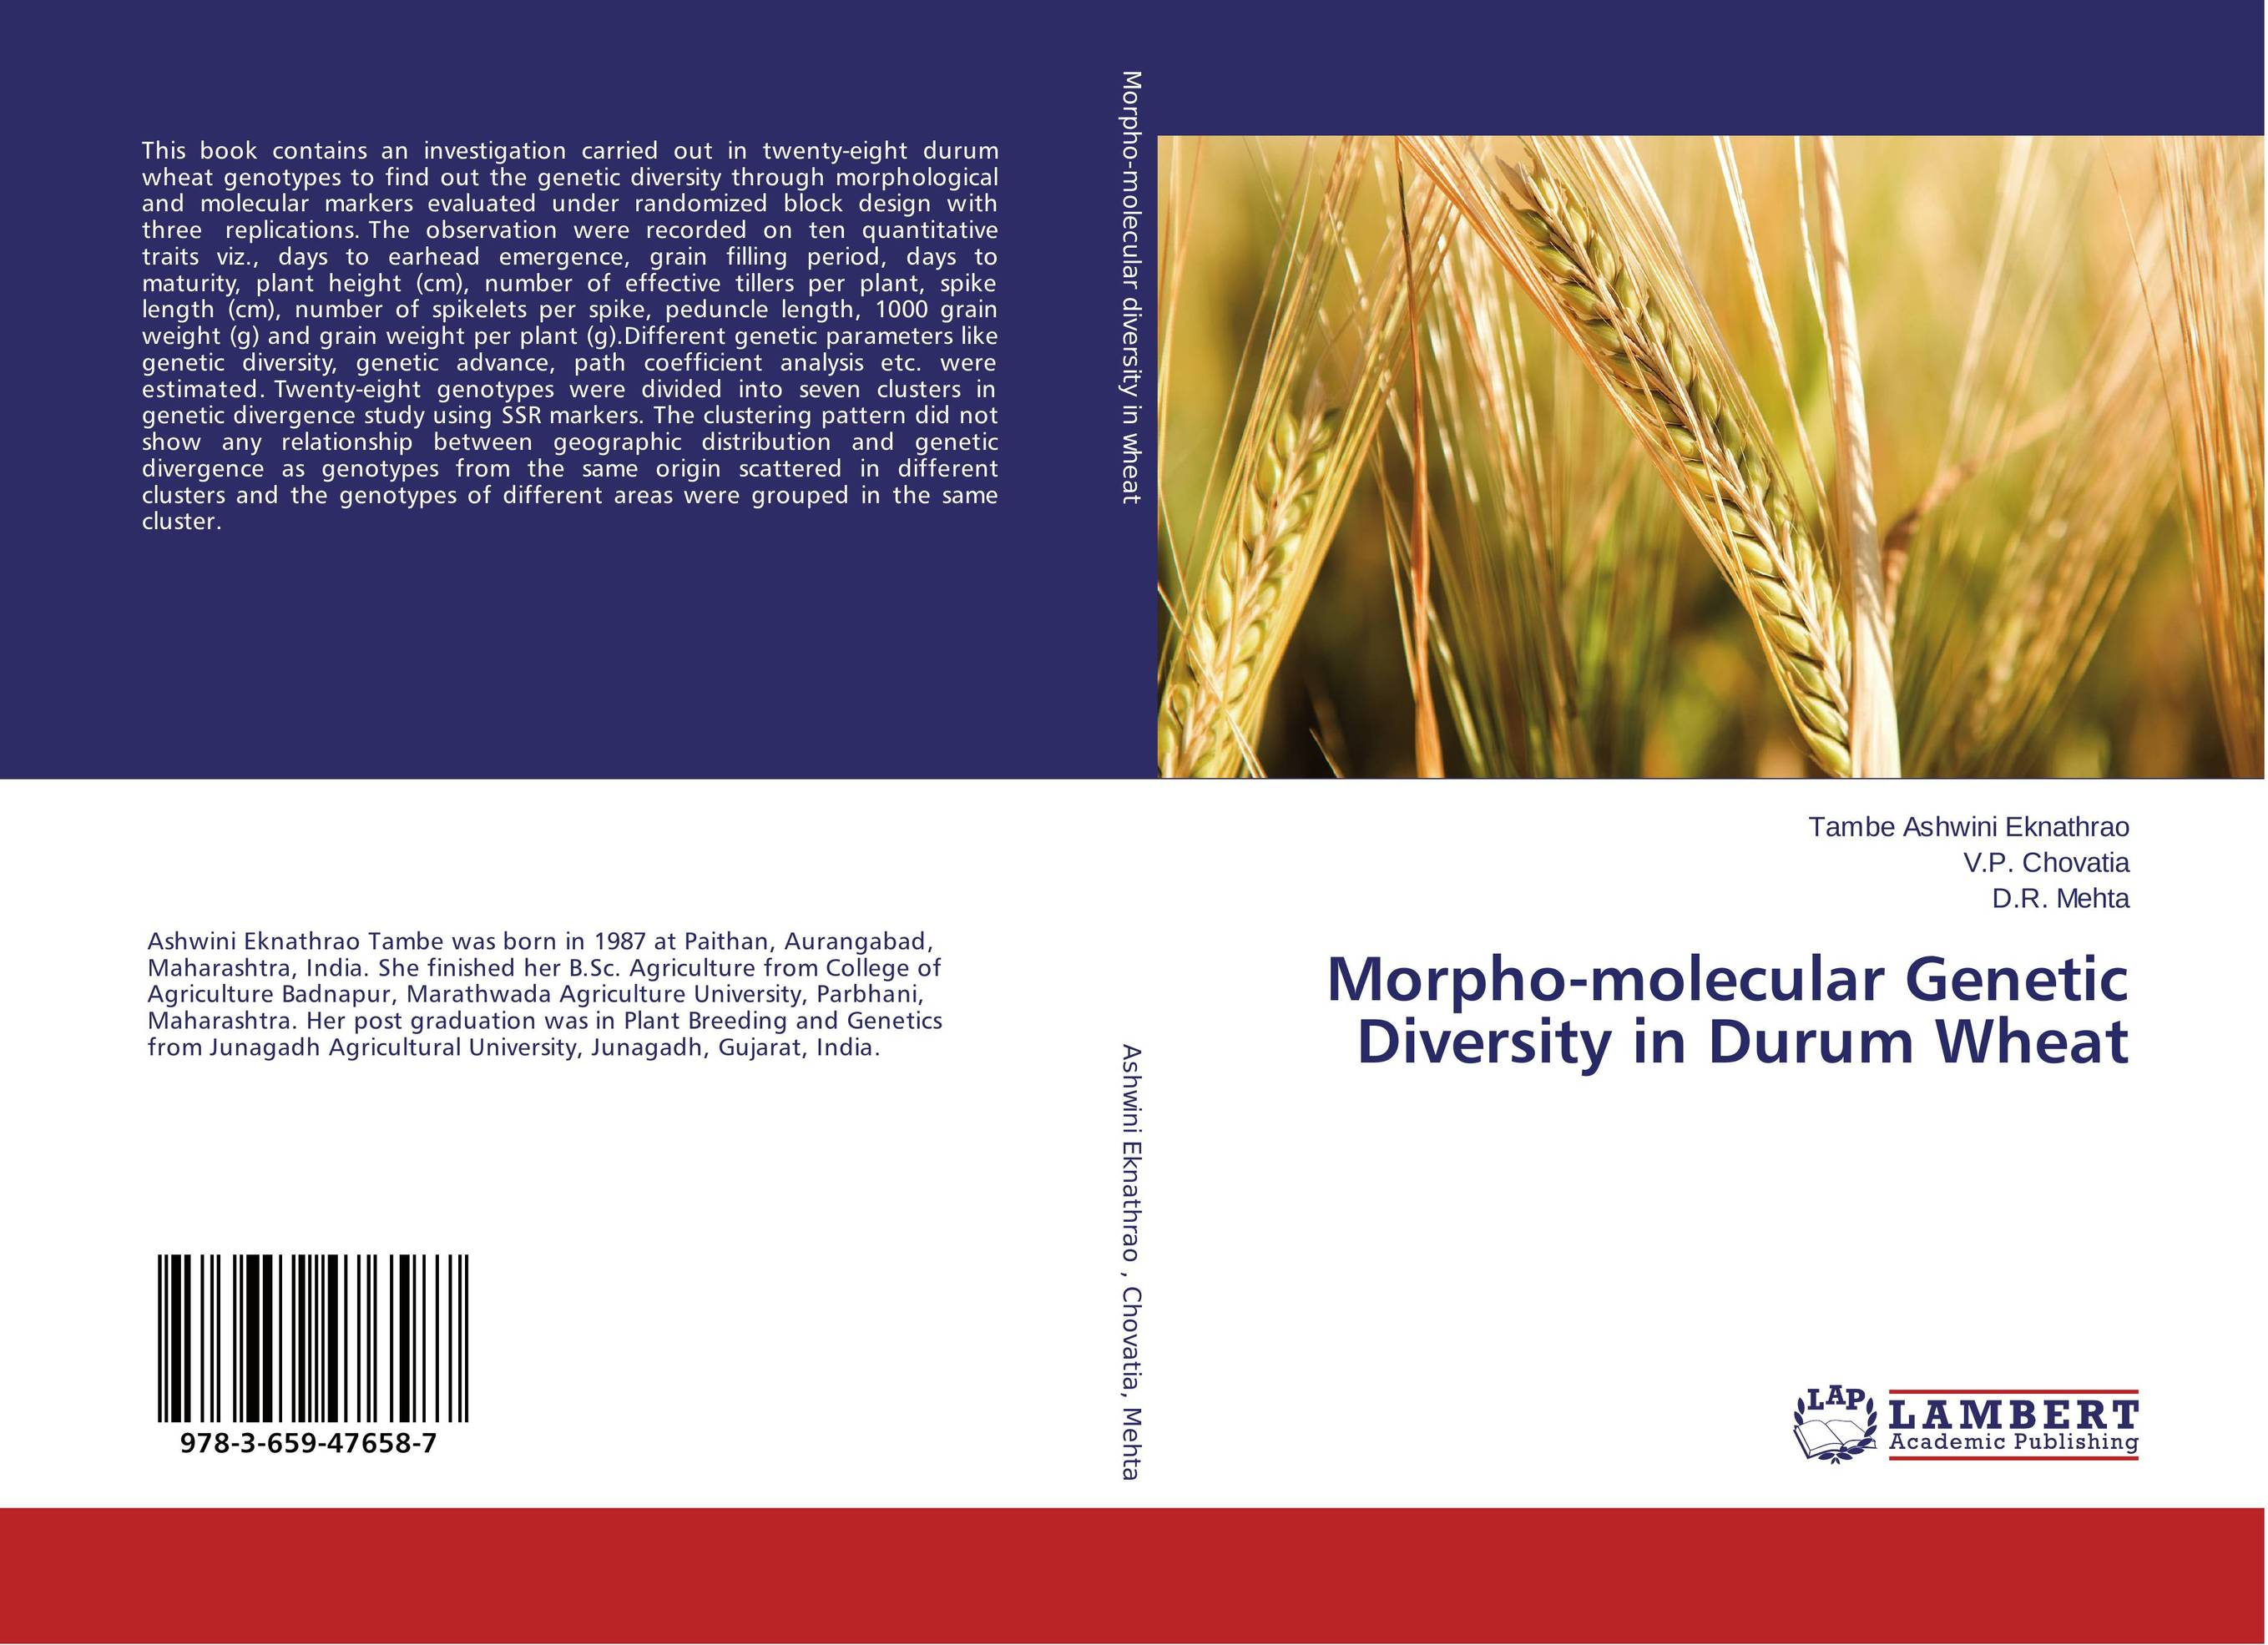 Morpho-molecular Genetic Diversity in Durum Wheat vaishali shami naresh pratap singh and pramod kumar pal morpho physio and genetic diversity analysis on indian wheat genotypes